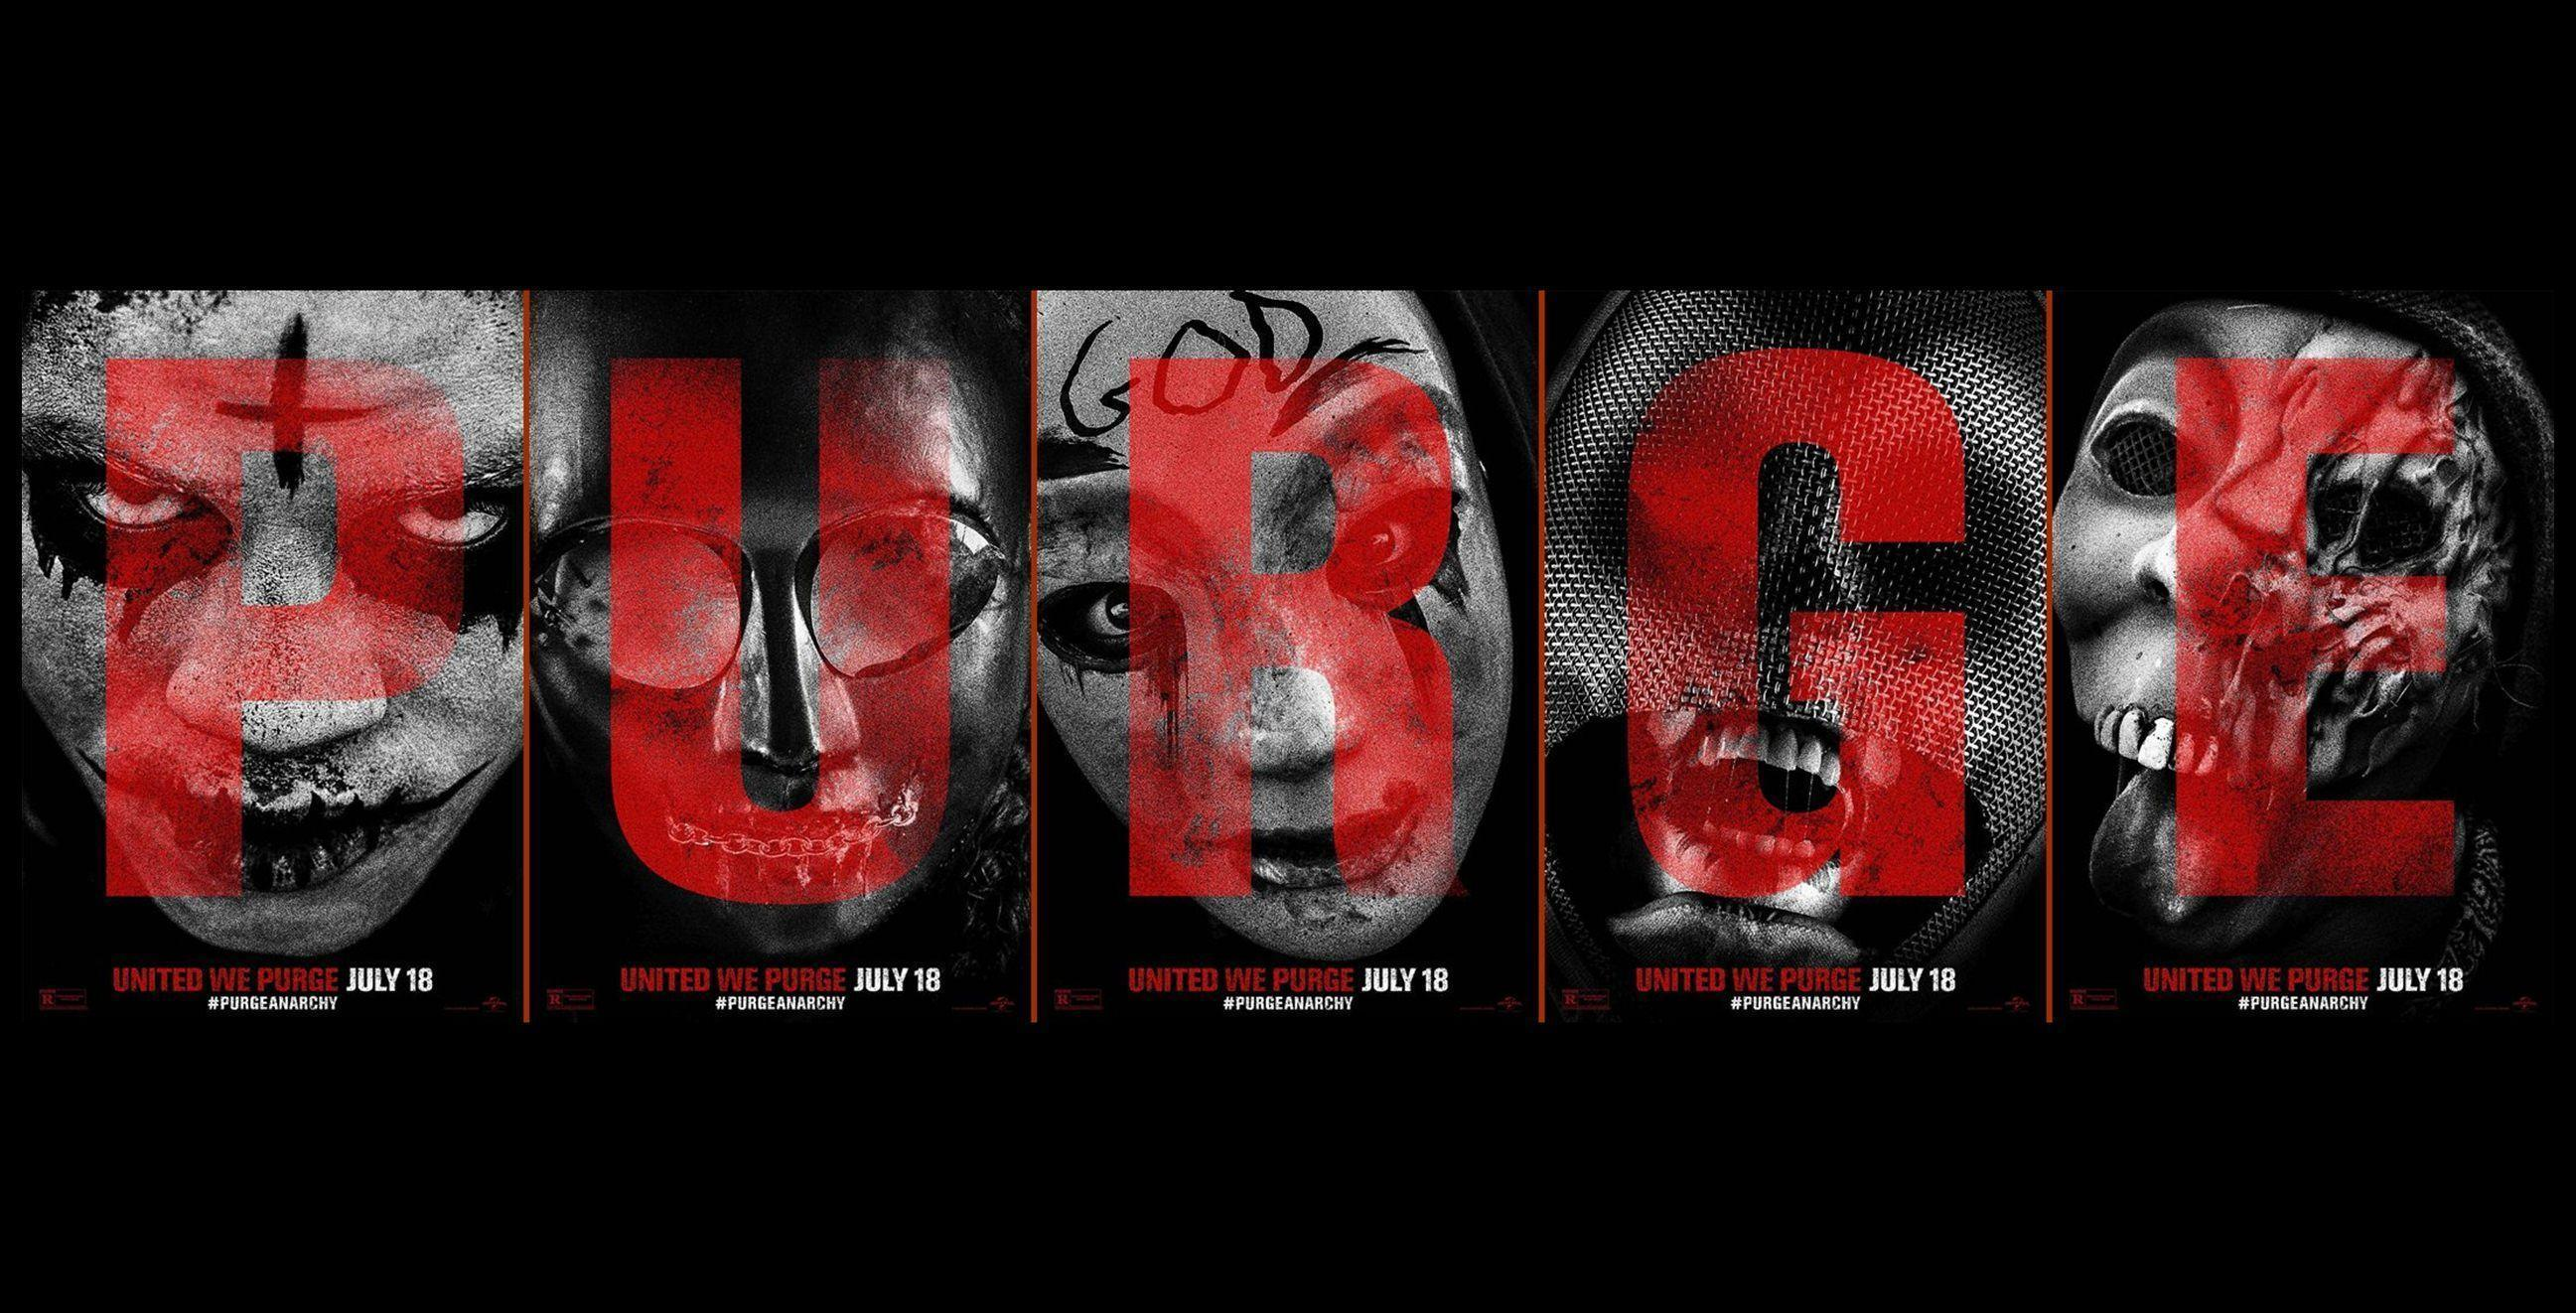 The Purge Election Year Poster Wallpapers: The Purge Wallpapers